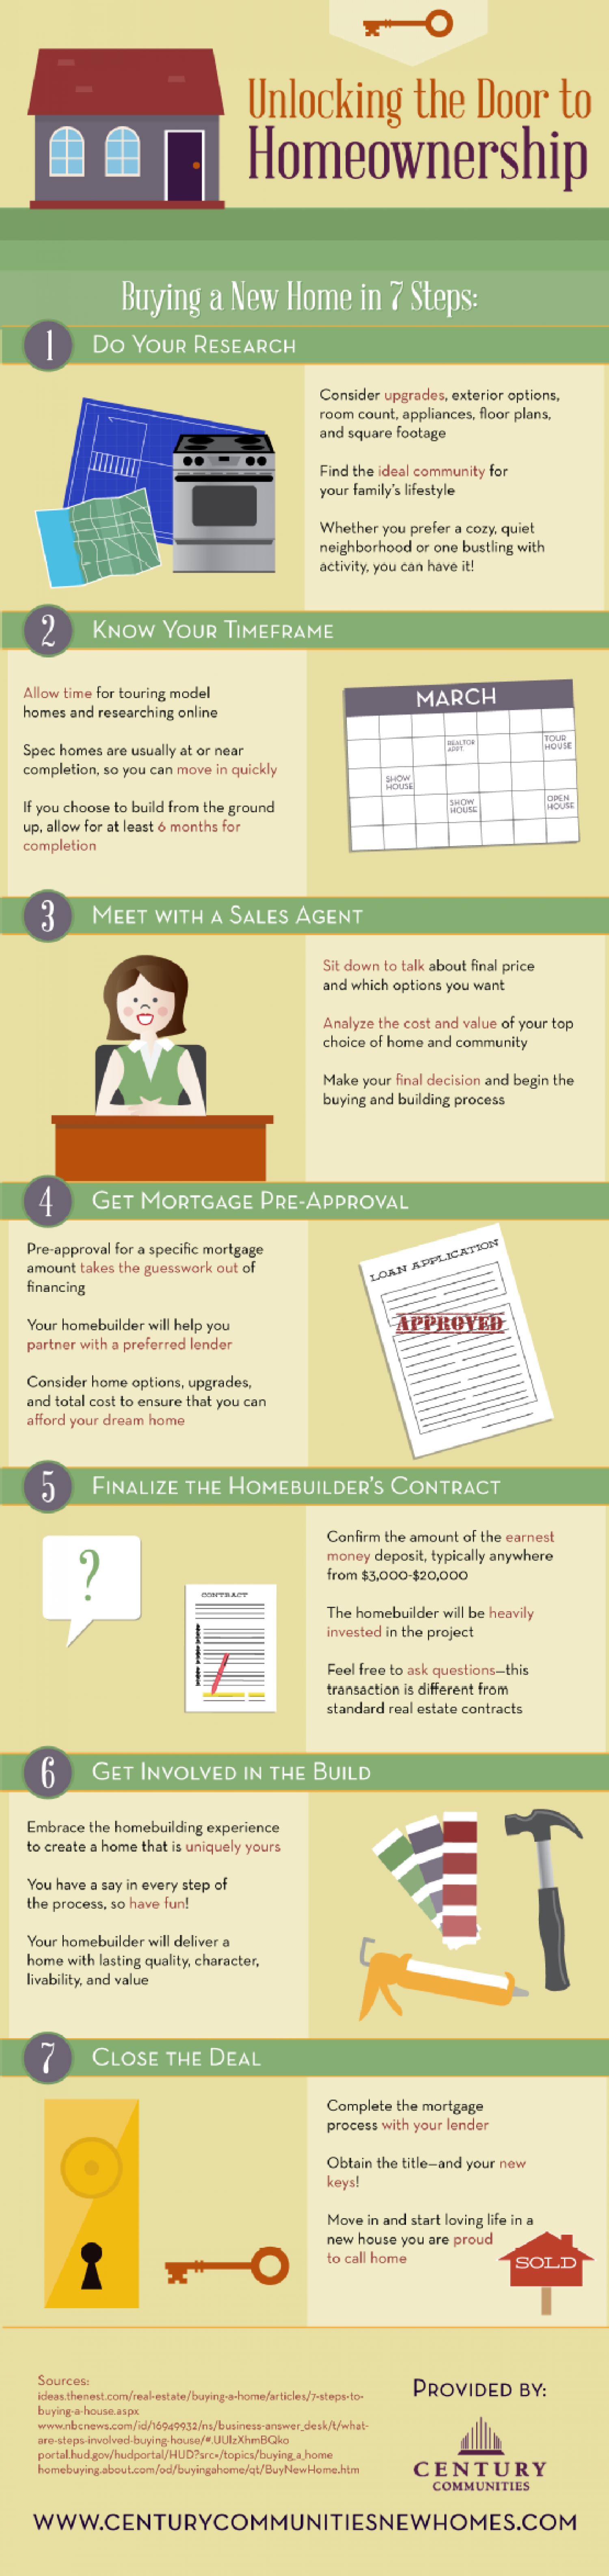 Unlocking the Door to Homeownership Infographic